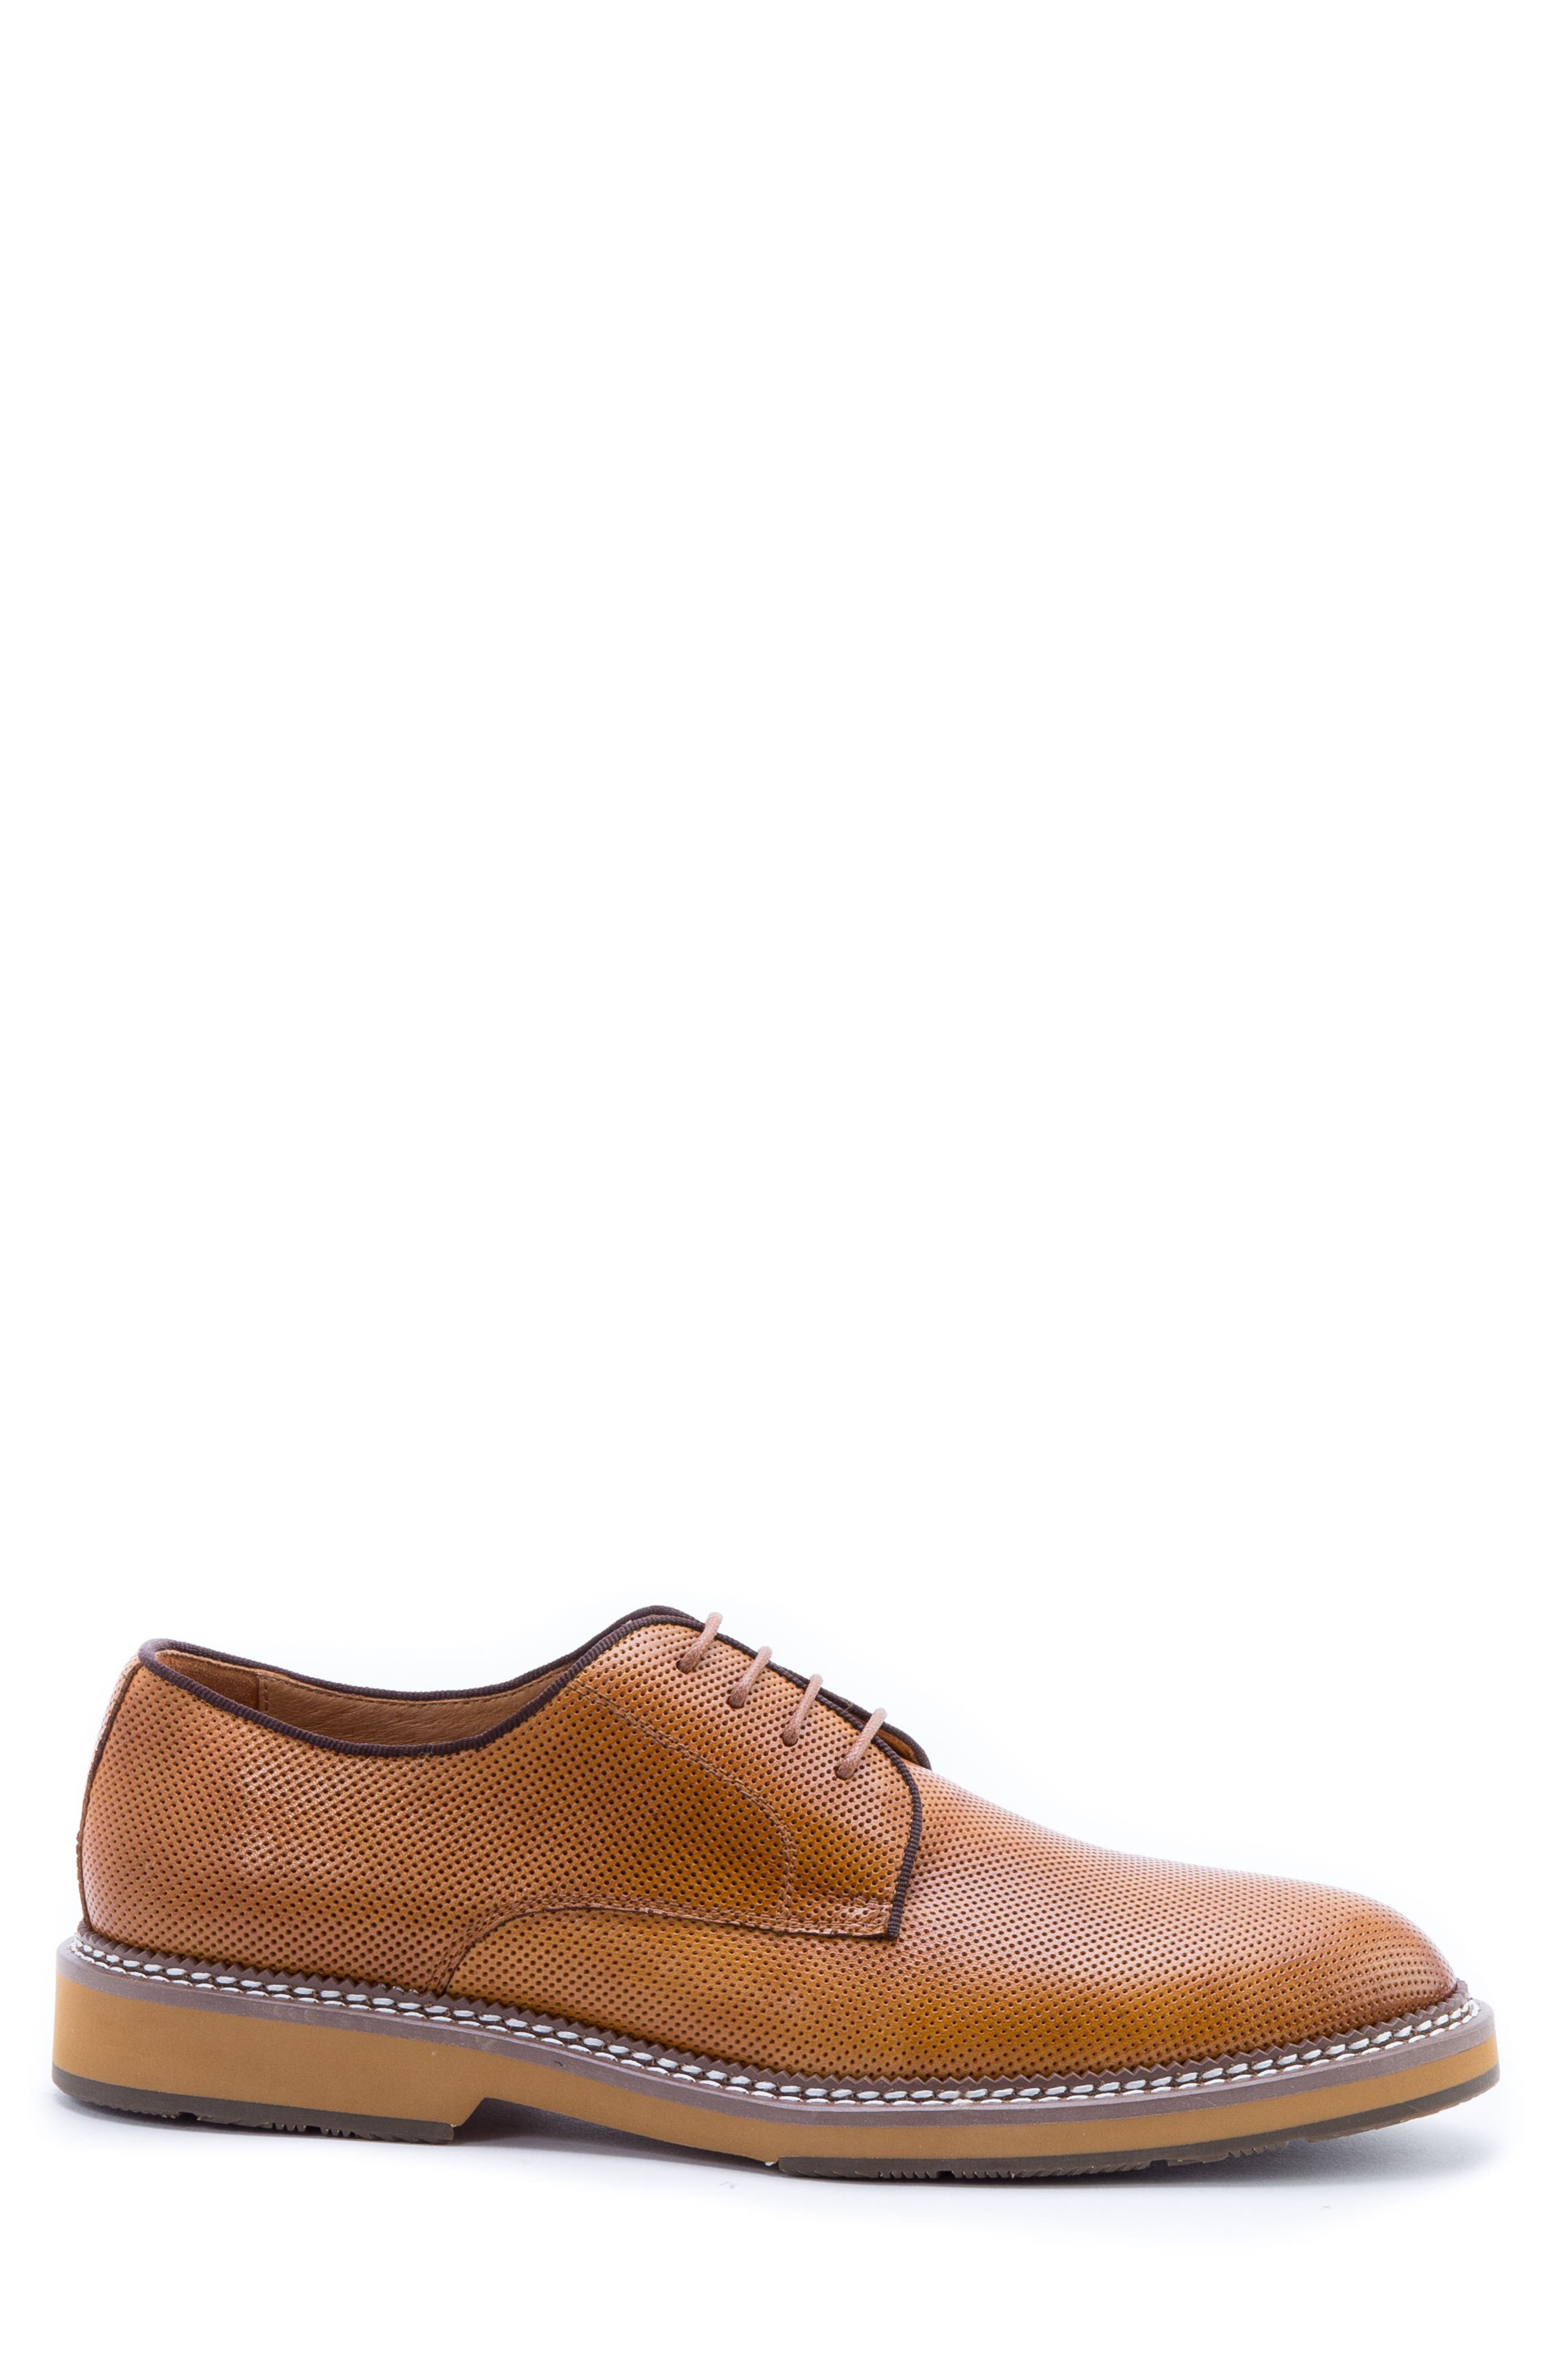 Monticello Perforated Plain Toe Derby,                             Alternate thumbnail 3, color,                             Cognac Leather